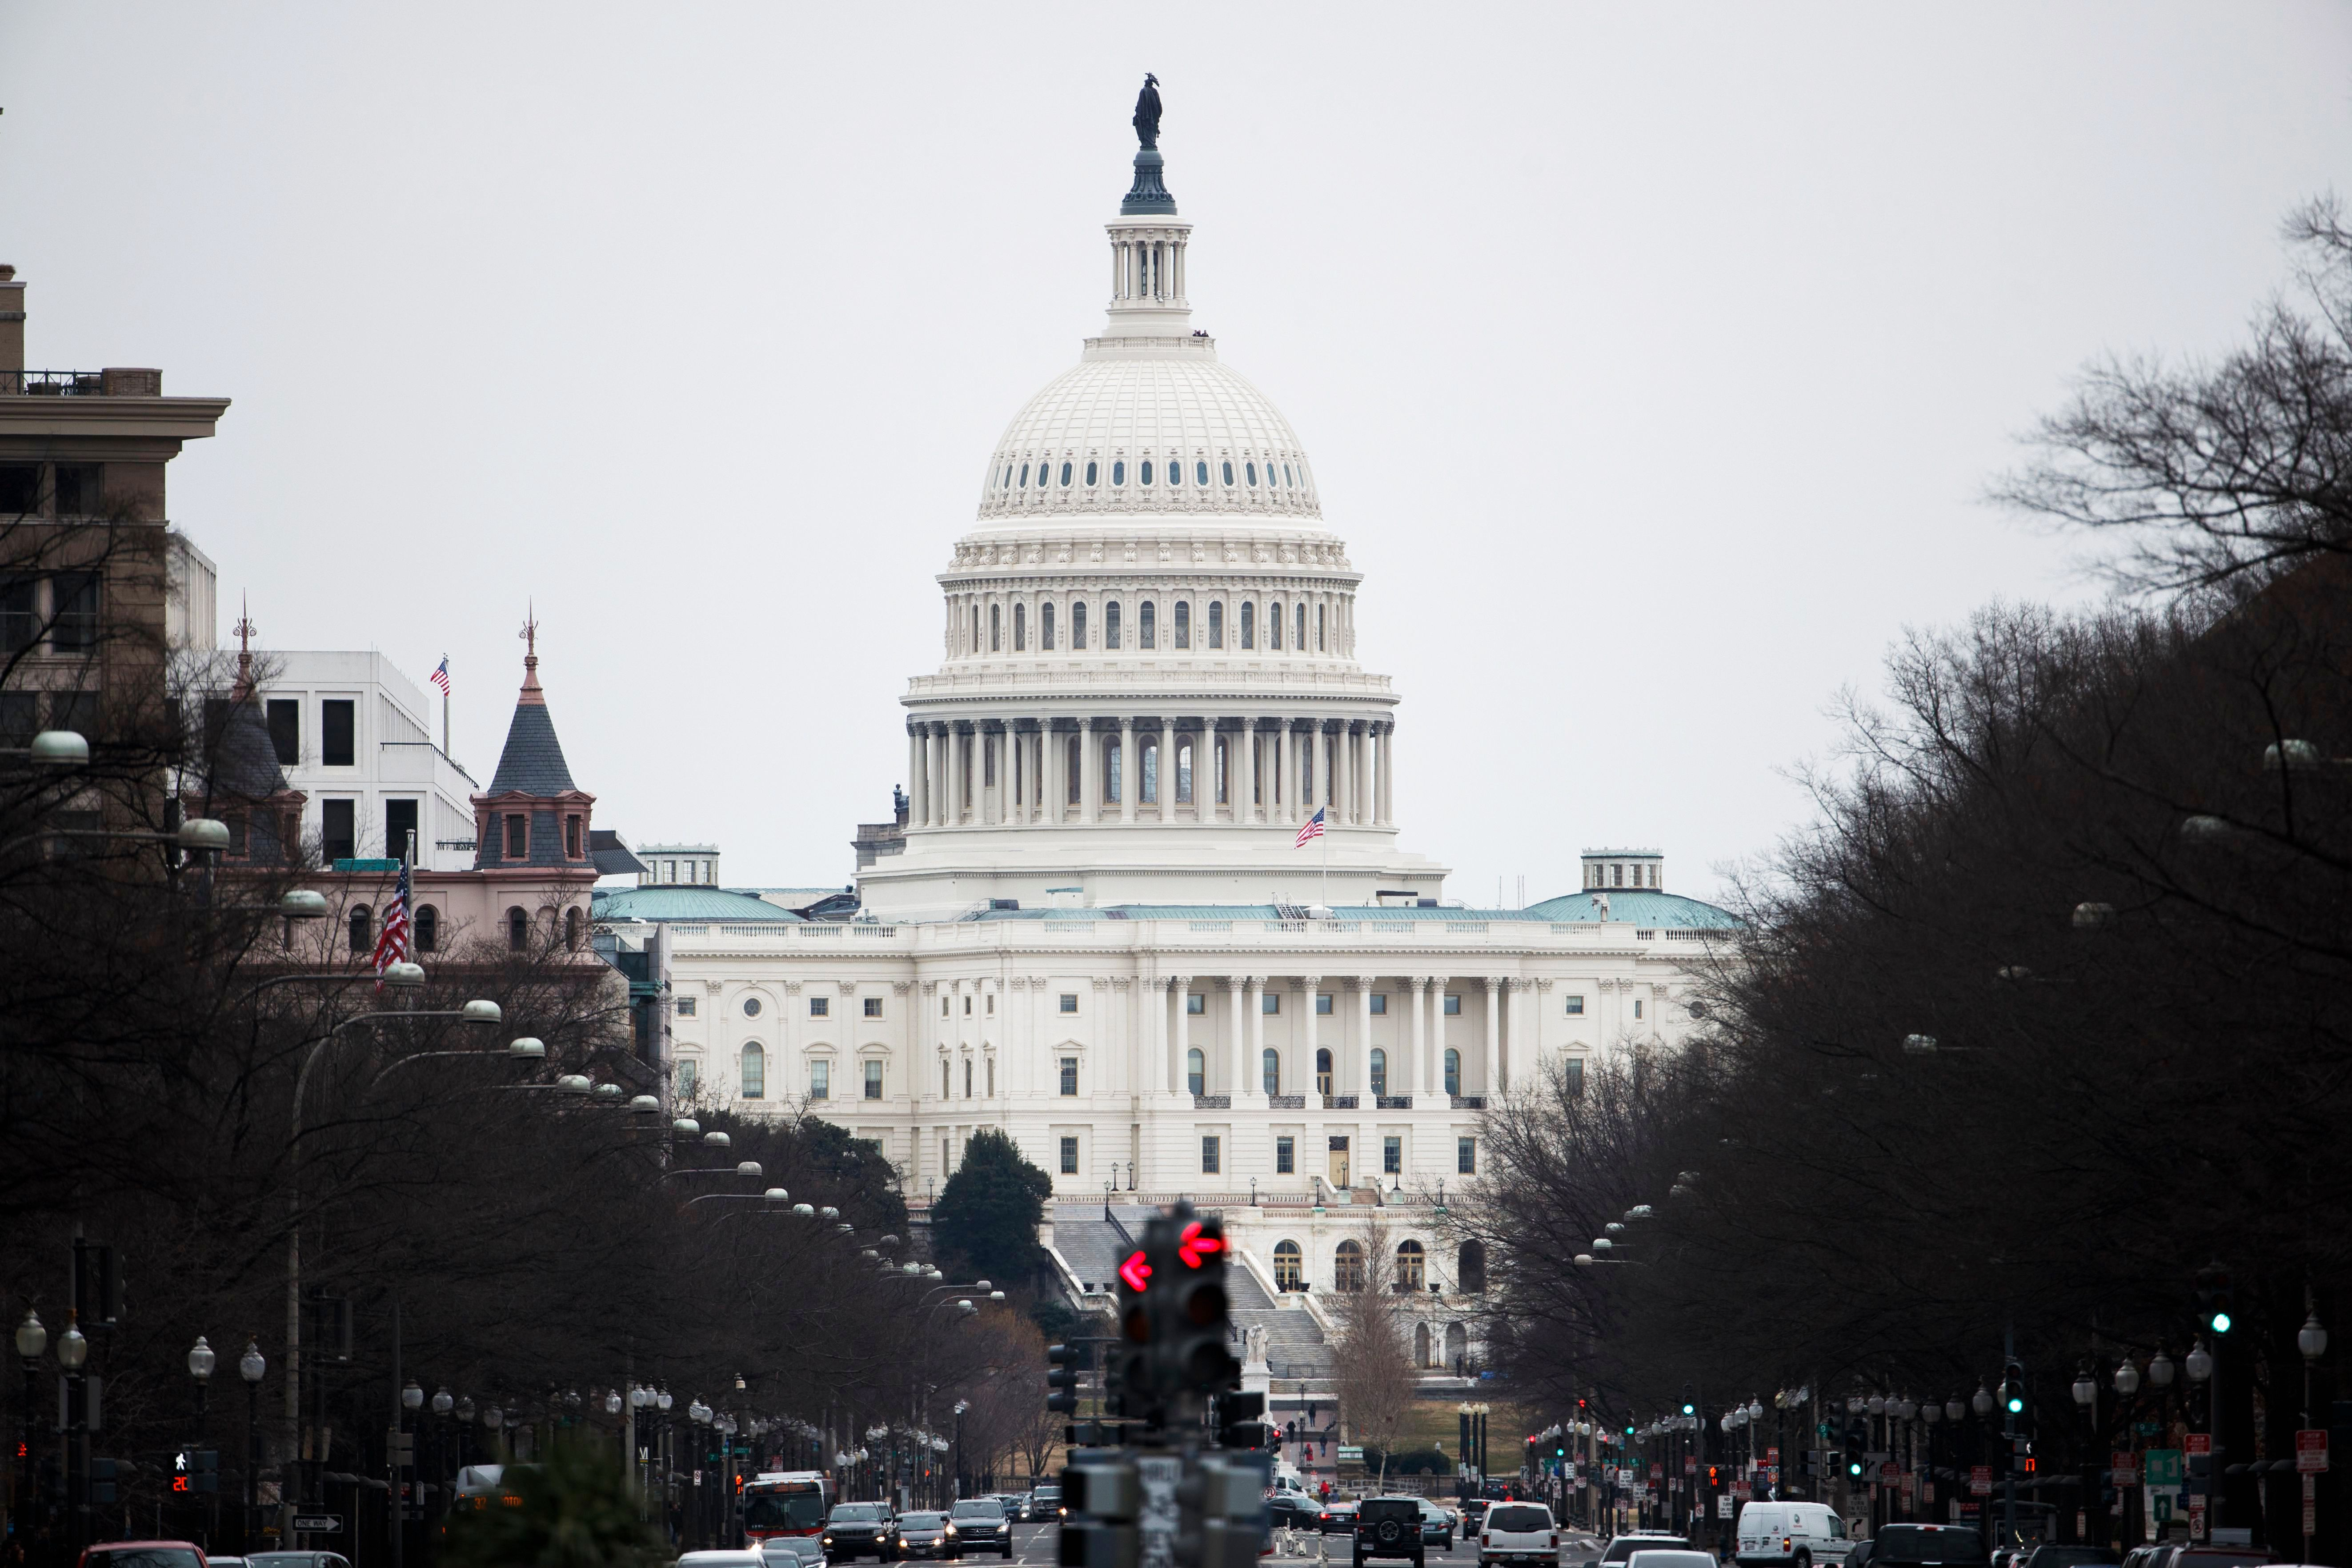 The US Capitol on Pennsylvania Avenue in Washington, DC, USA, 12 January 2019. The current partial shutdown of the US federal government, now the longest in US history, has many federal employees including Secret Service agents and officers working unpaid.The current partial shutdown of the US federal government becomes the longest in US history, Washington, USA - 12 Jan 2019